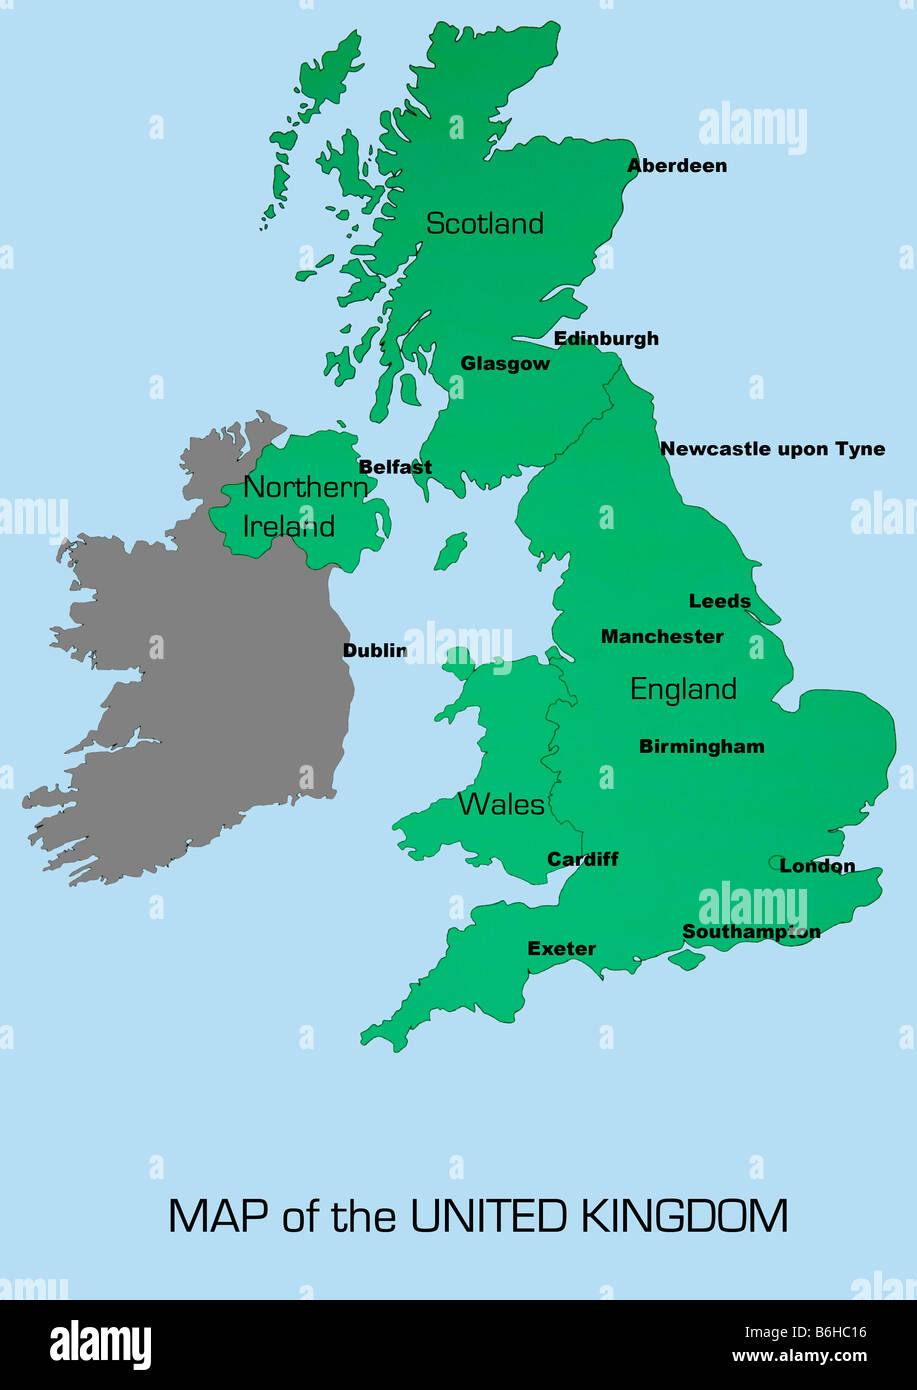 Map Of England Showing Major Cities.Uk Map Showing England Scotland Wales And Northern Ireland With